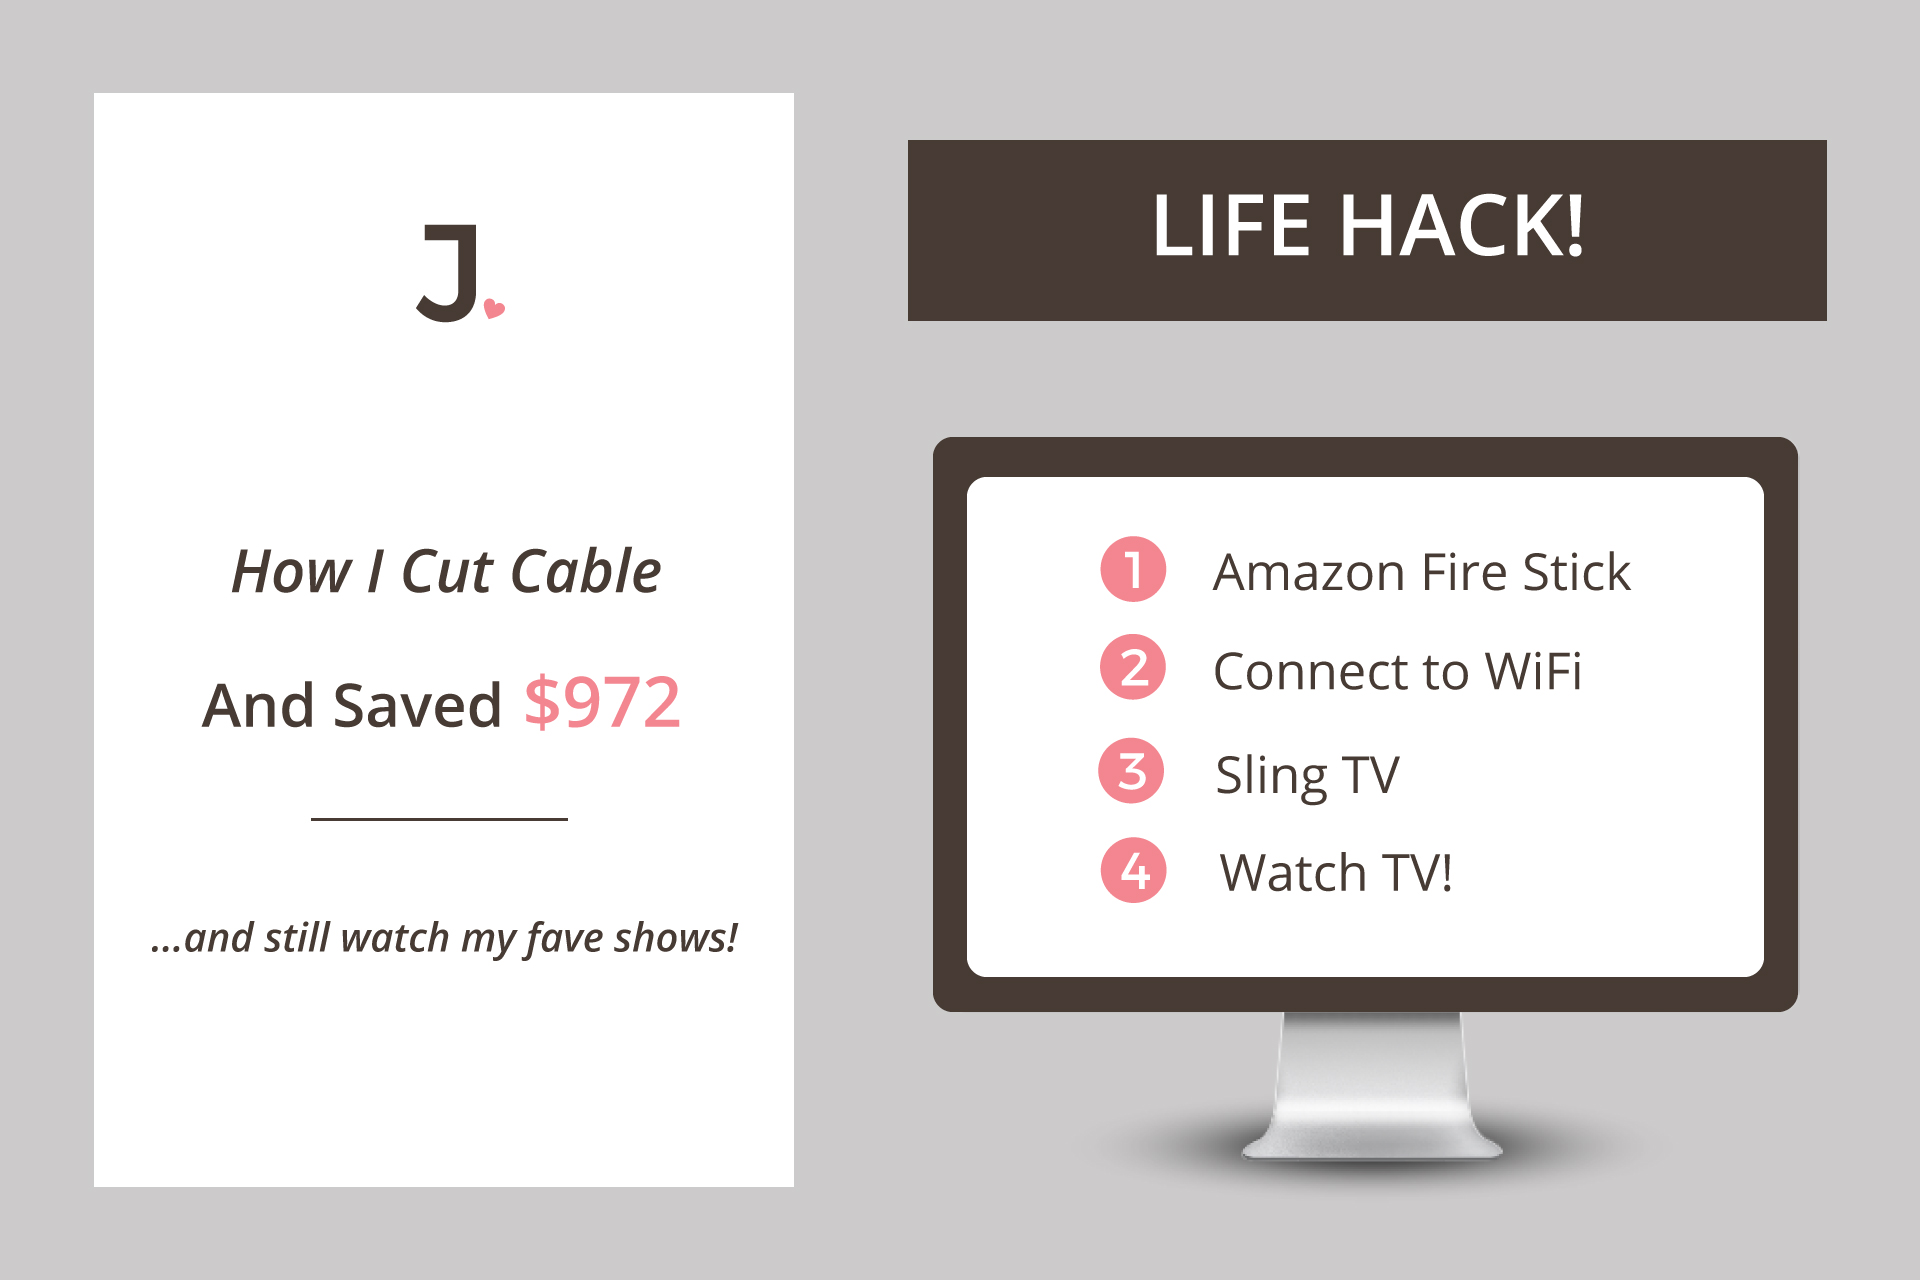 Cancel Cable Save Money: It's March Madness and with so much attention focused around watching sports on TV, I figured it's the perfect time to bring you my first Life Hack where I cancel cable save money!